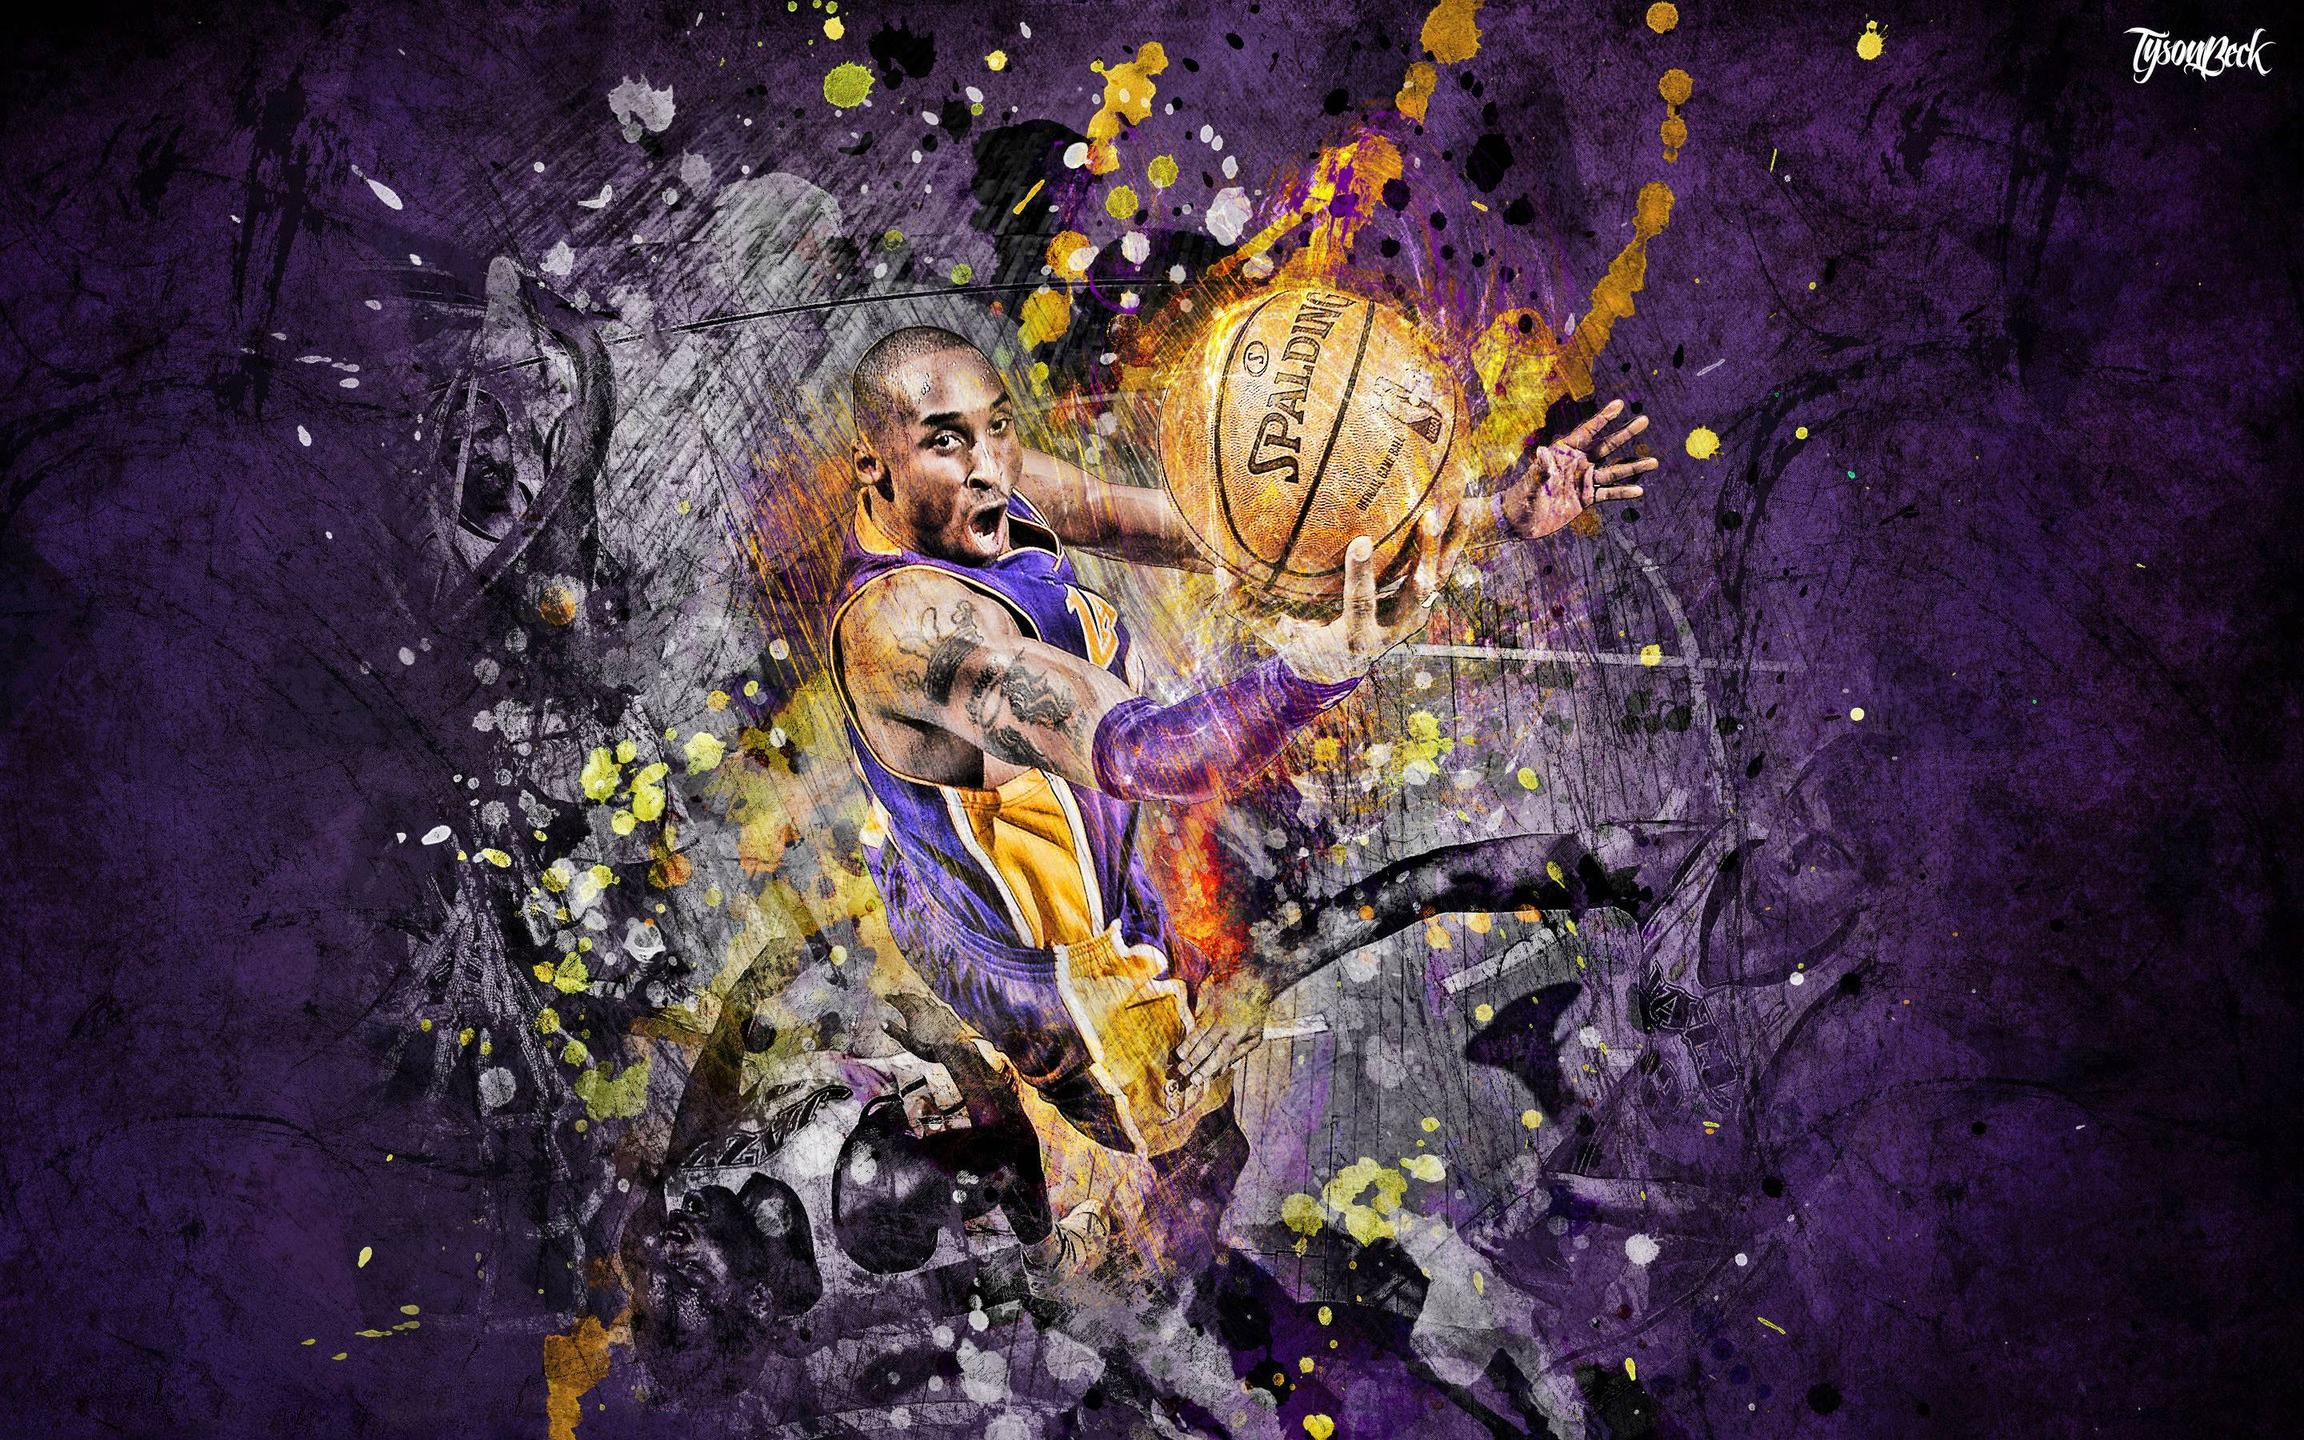 Kobe bryant full hd wallpaper and background image 2304x1440 id sports kobe bryant wallpaper voltagebd Image collections